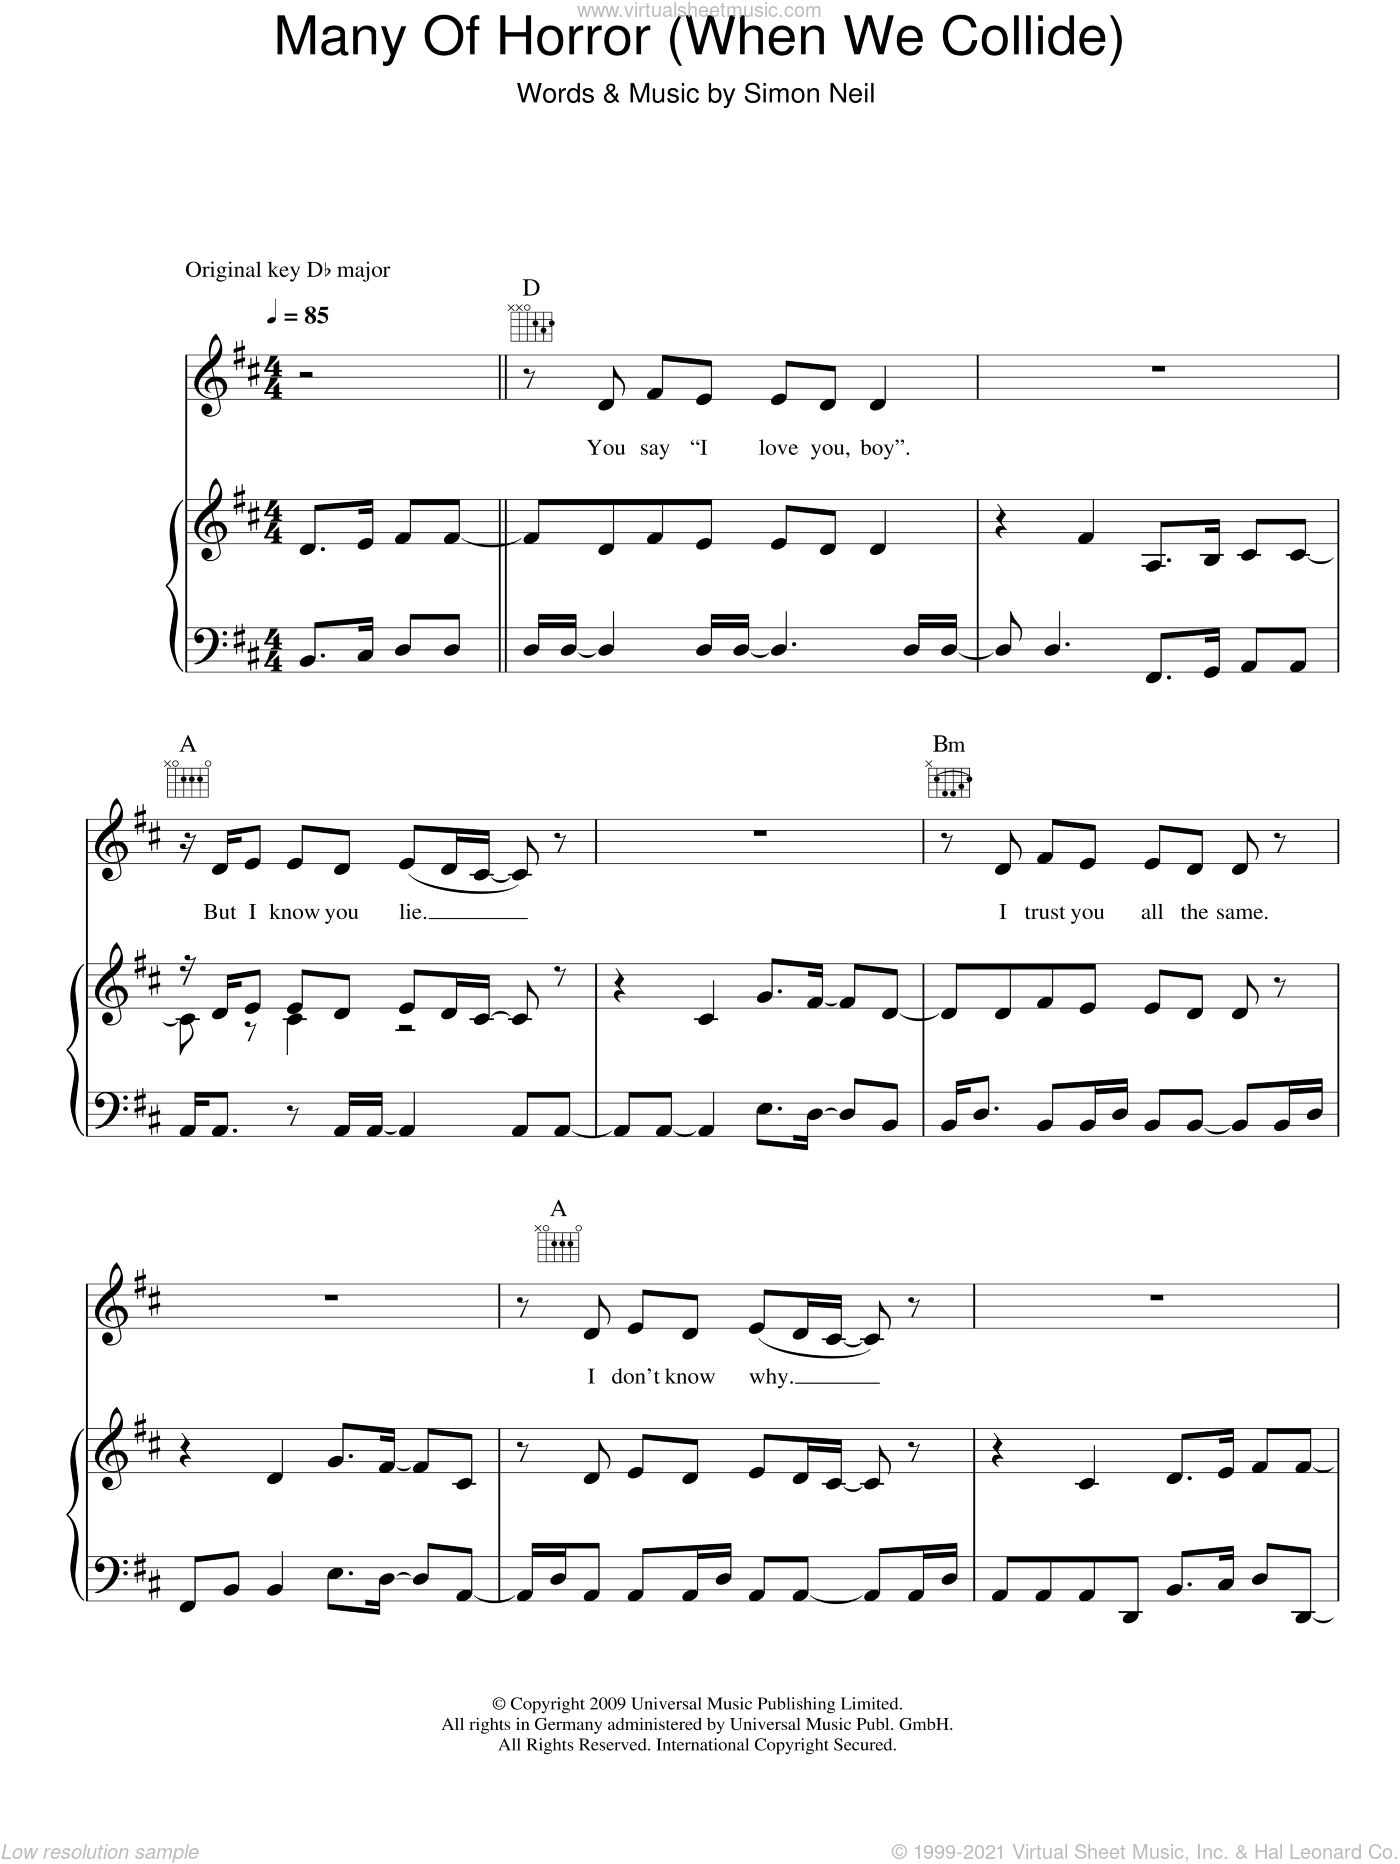 Many Of Horror (When We Collide) sheet music for voice, piano or guitar by Simon Neil